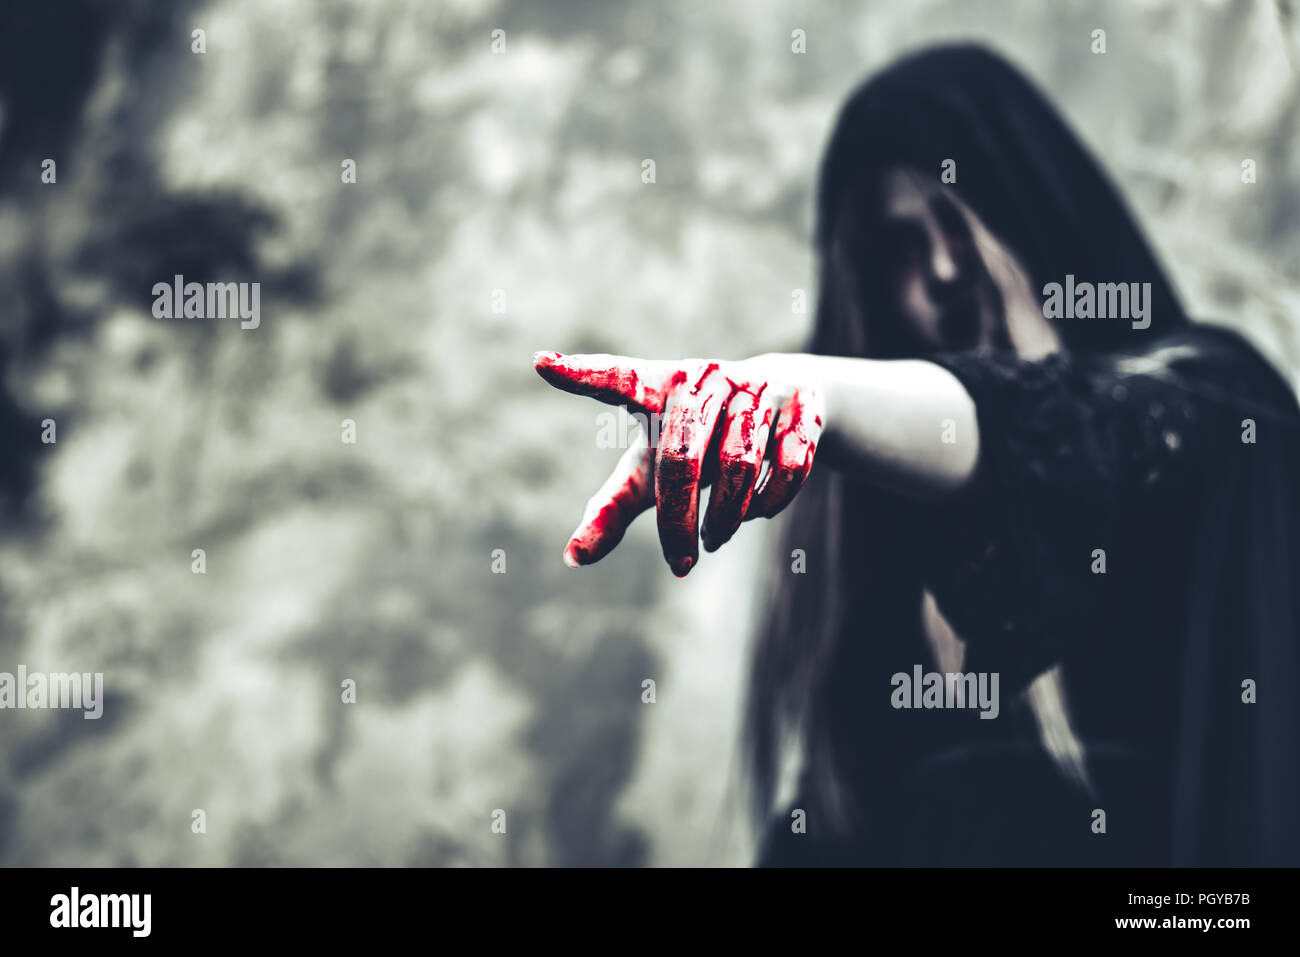 Close up of bloody ghost hand pointing to the front. Horror and ghost concept. Halloween and scary movie theme. Abandoned house theme - Stock Image